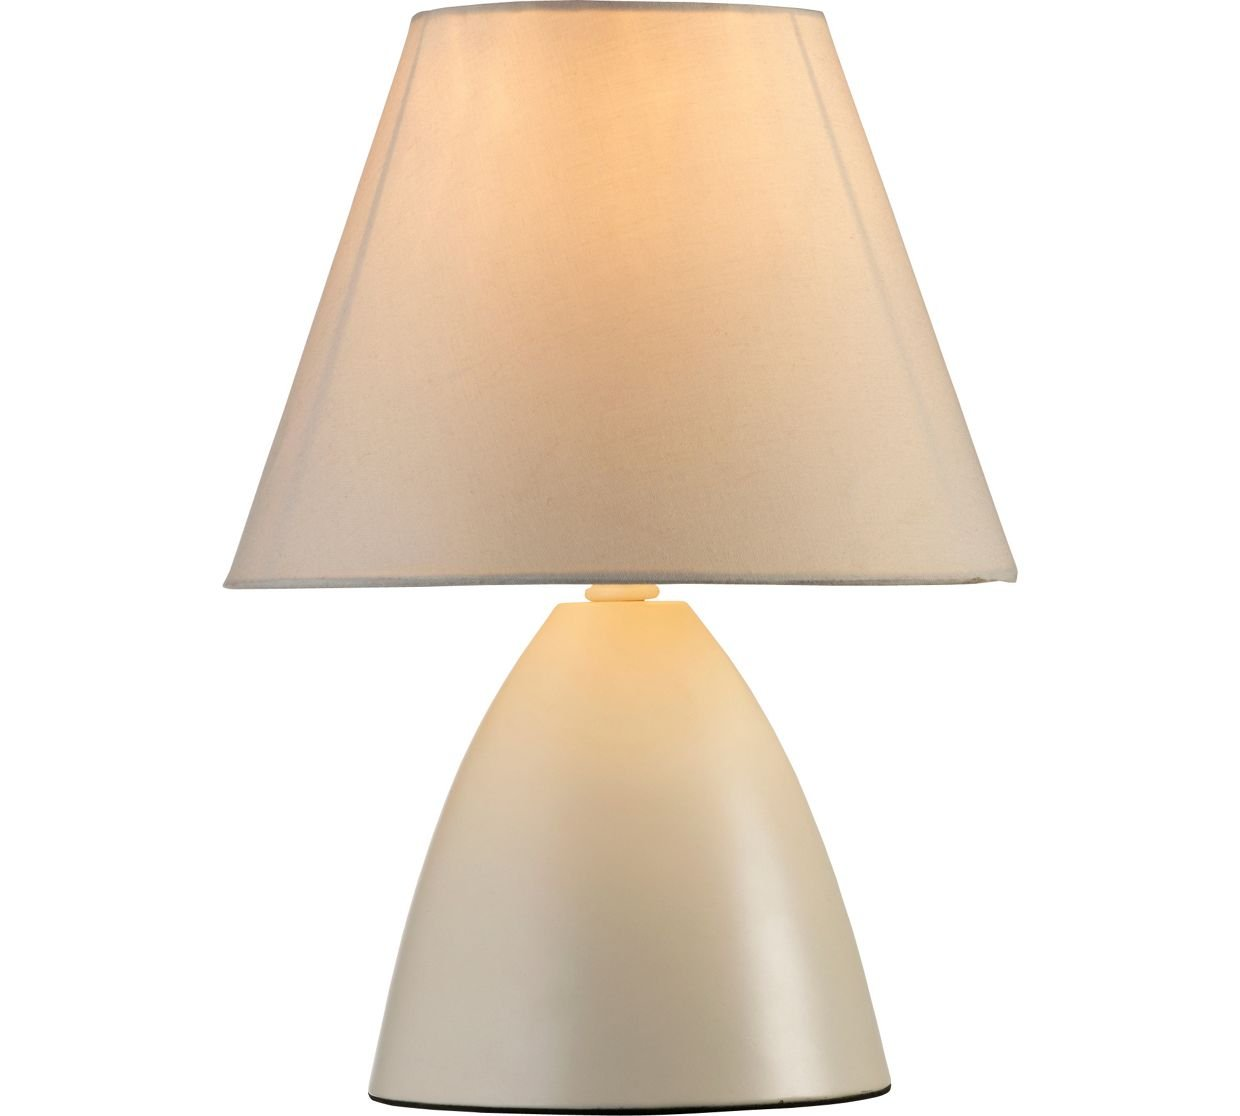 Unique home tenby touch table lamp cream amazon beauty mozeypictures Choice Image